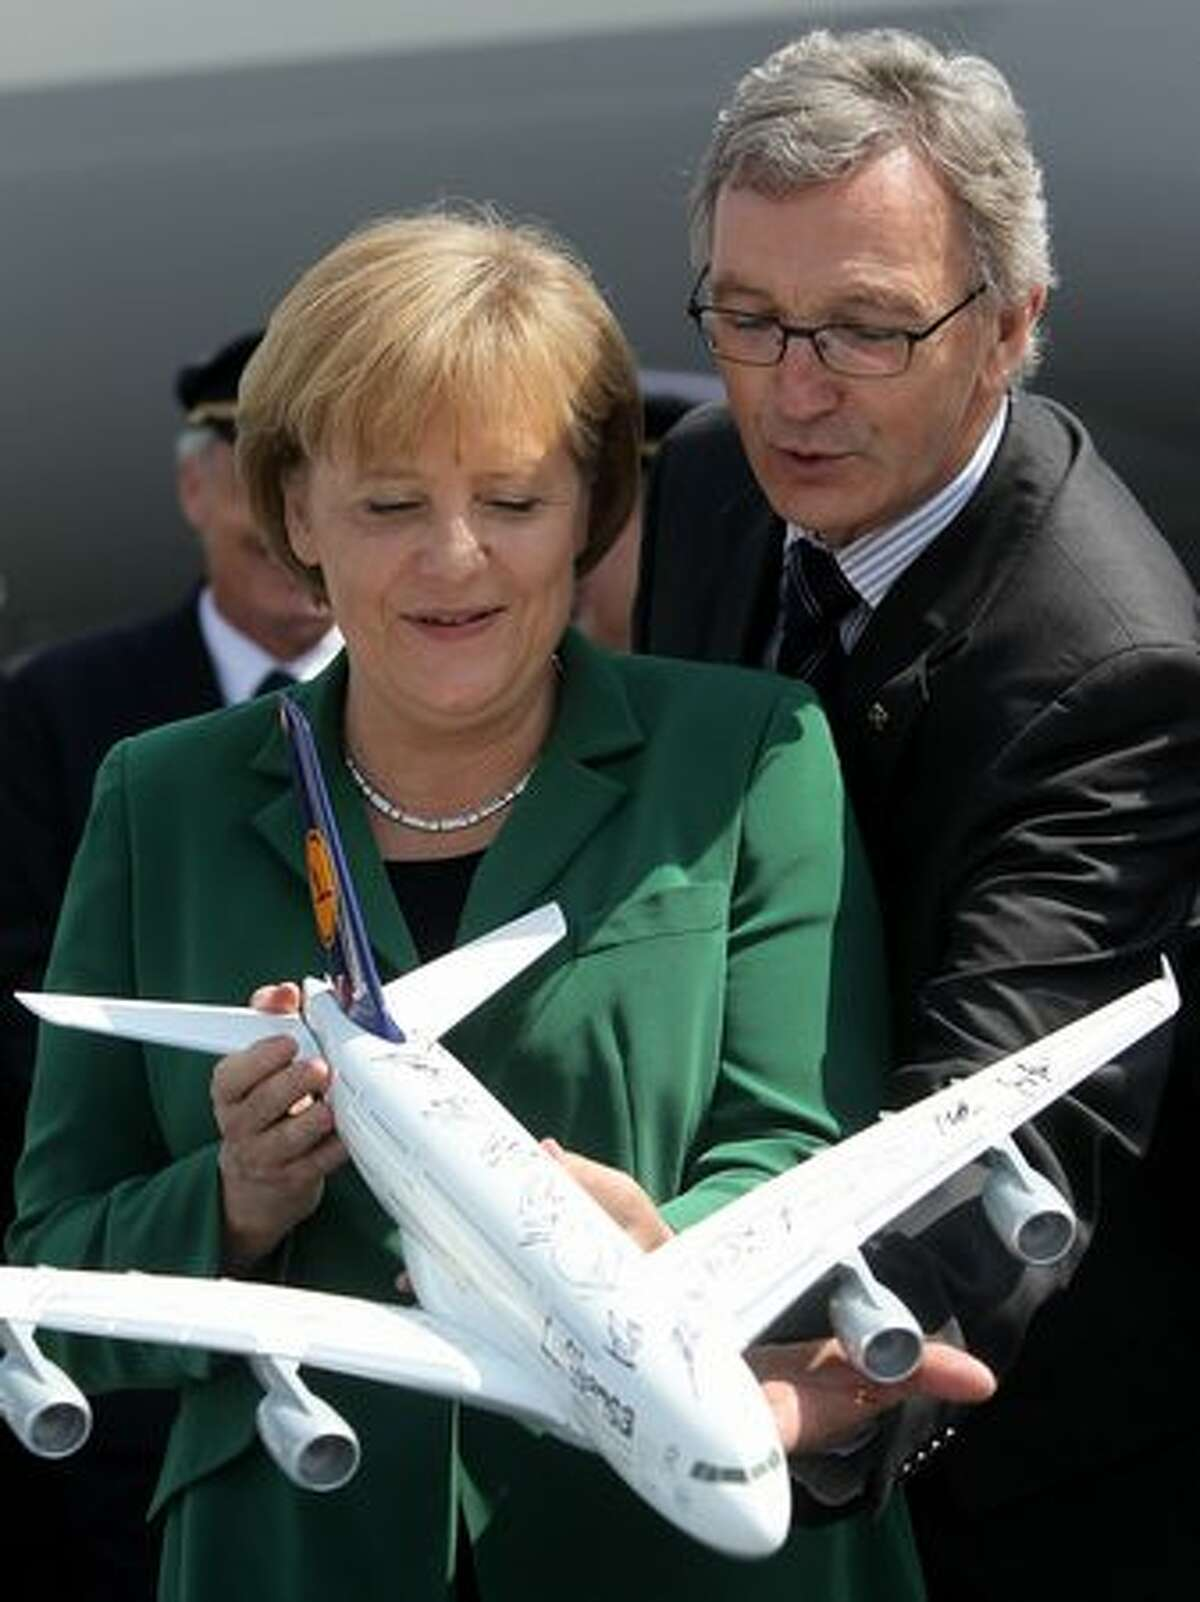 German Chancellor Angela Merkel poses with Lufthansa Chairman Wolfgang Mayrhuber and a model of an Airbus A380 airliner at the ILA Berlin Air Show.